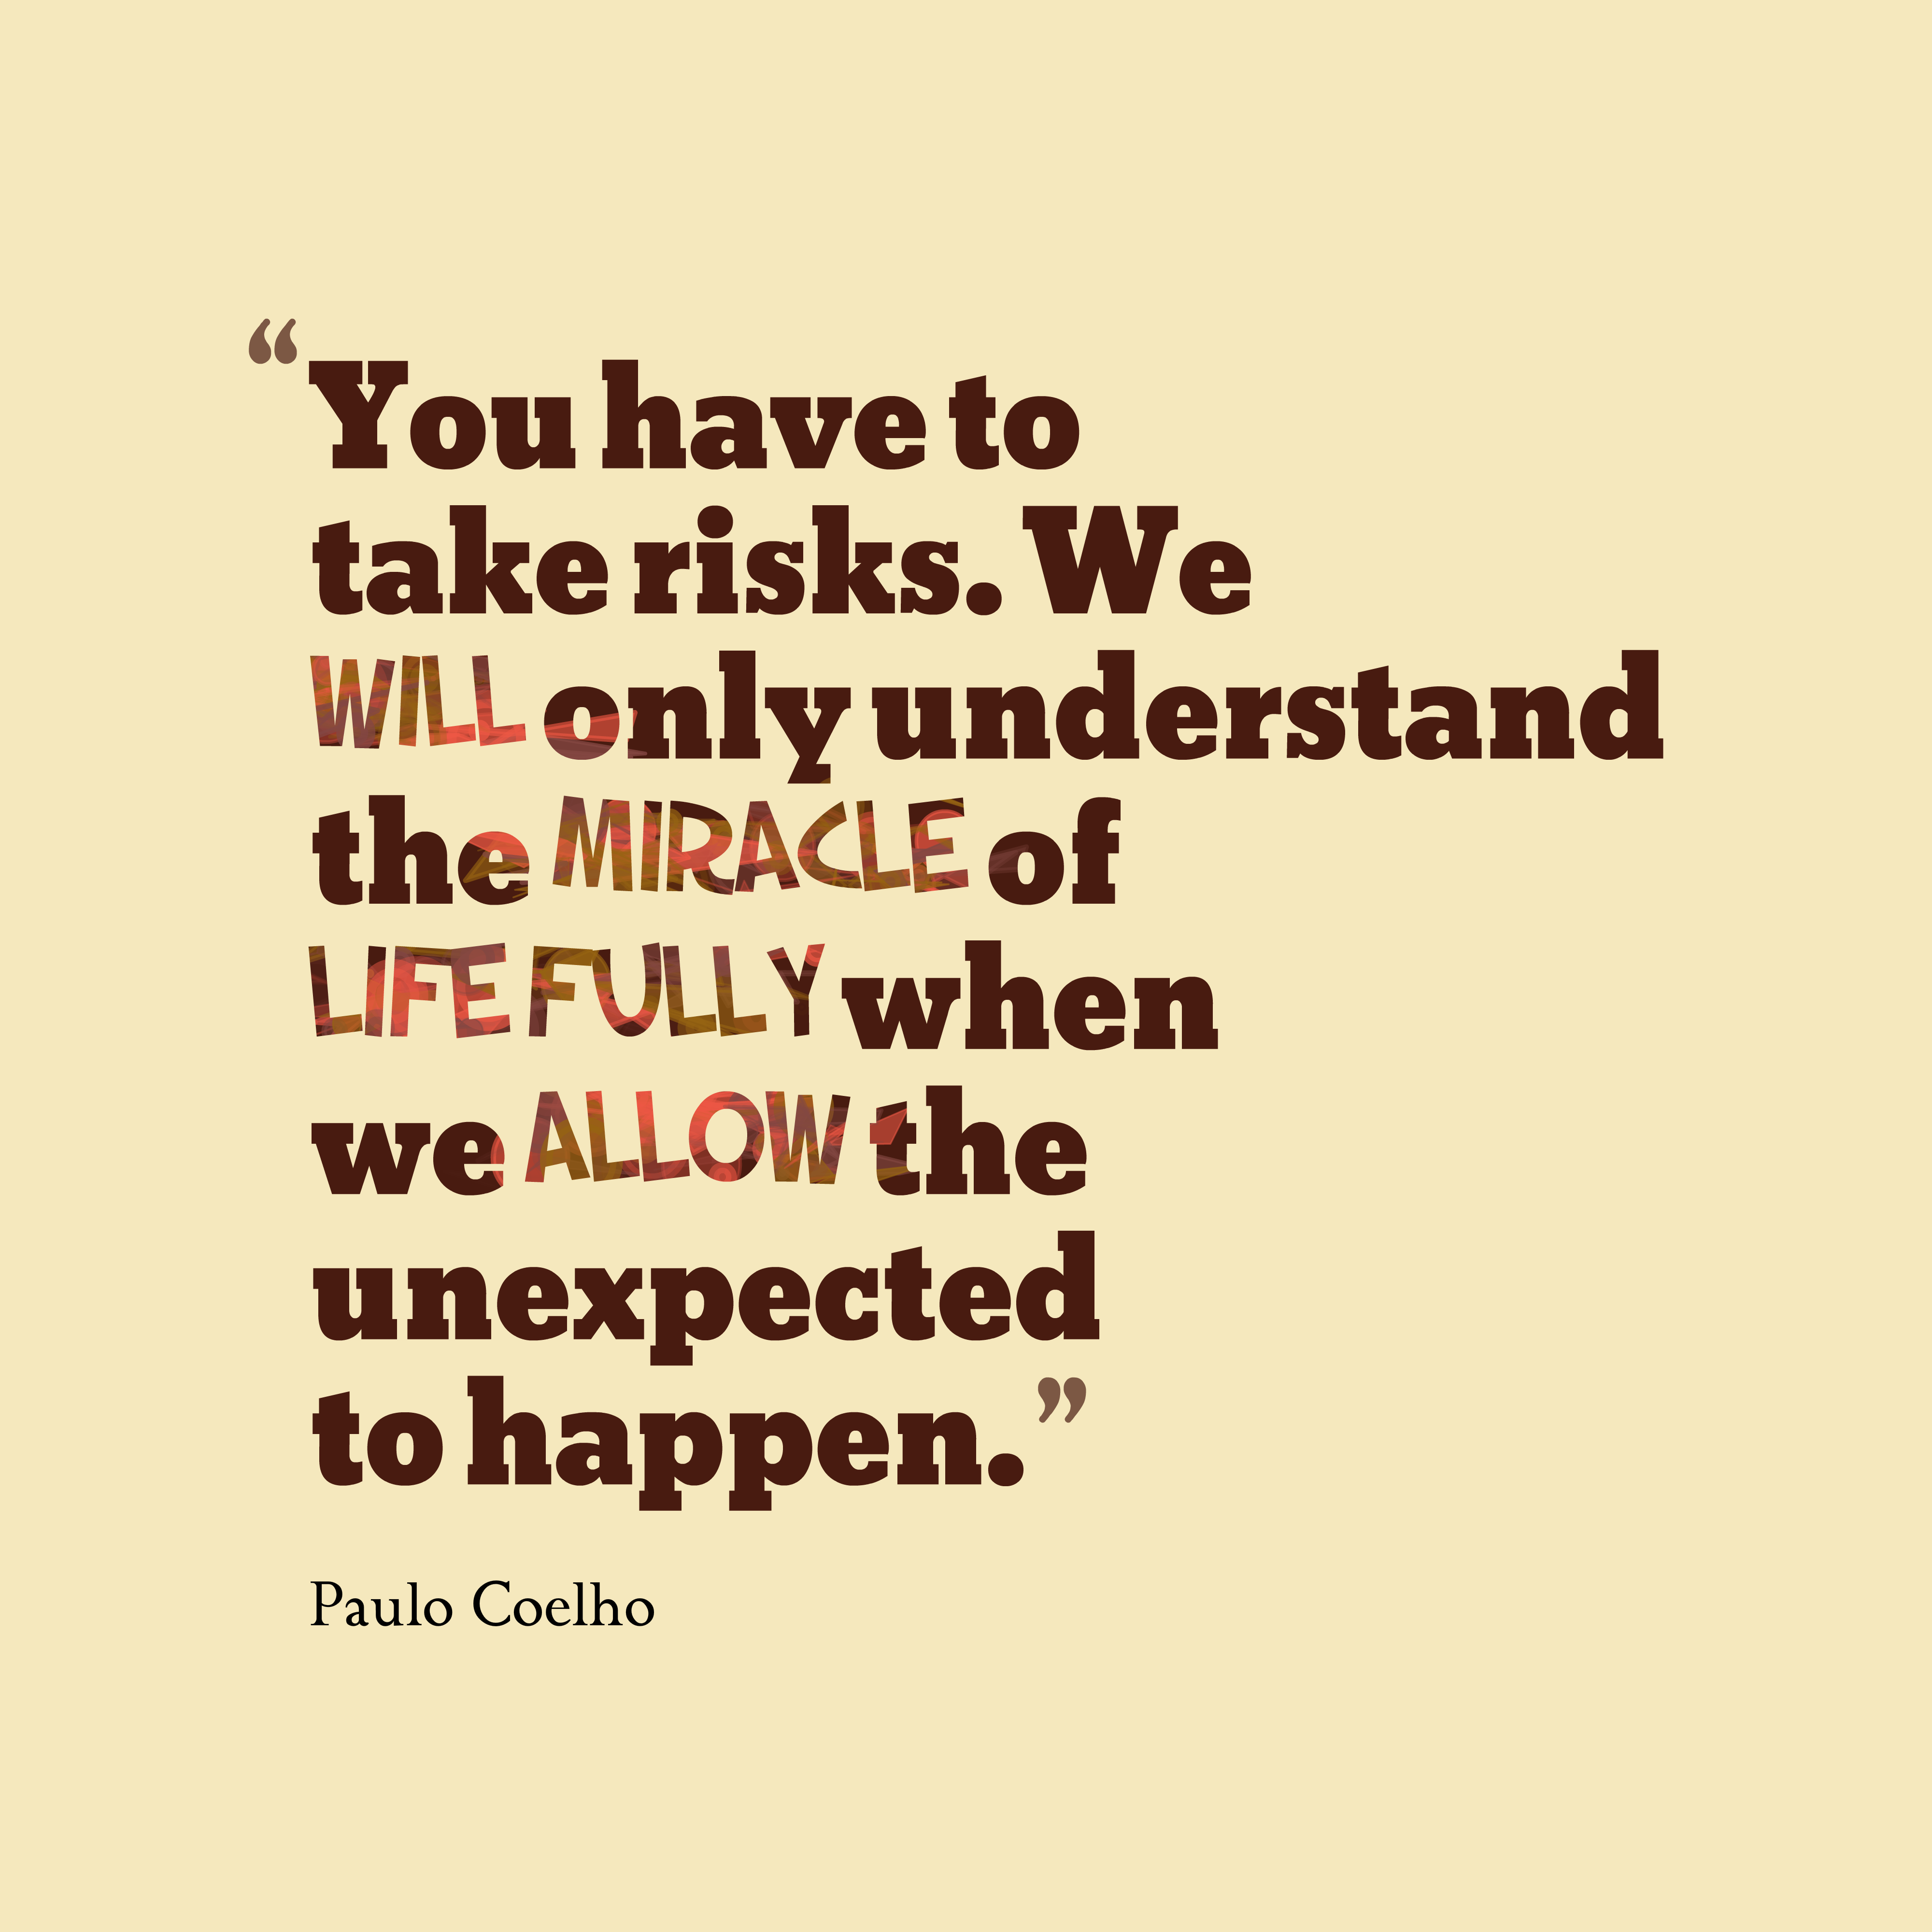 Quotes image of You have to take risks. We will only understand the miracle of life fully when we allow the unexpected to happen.